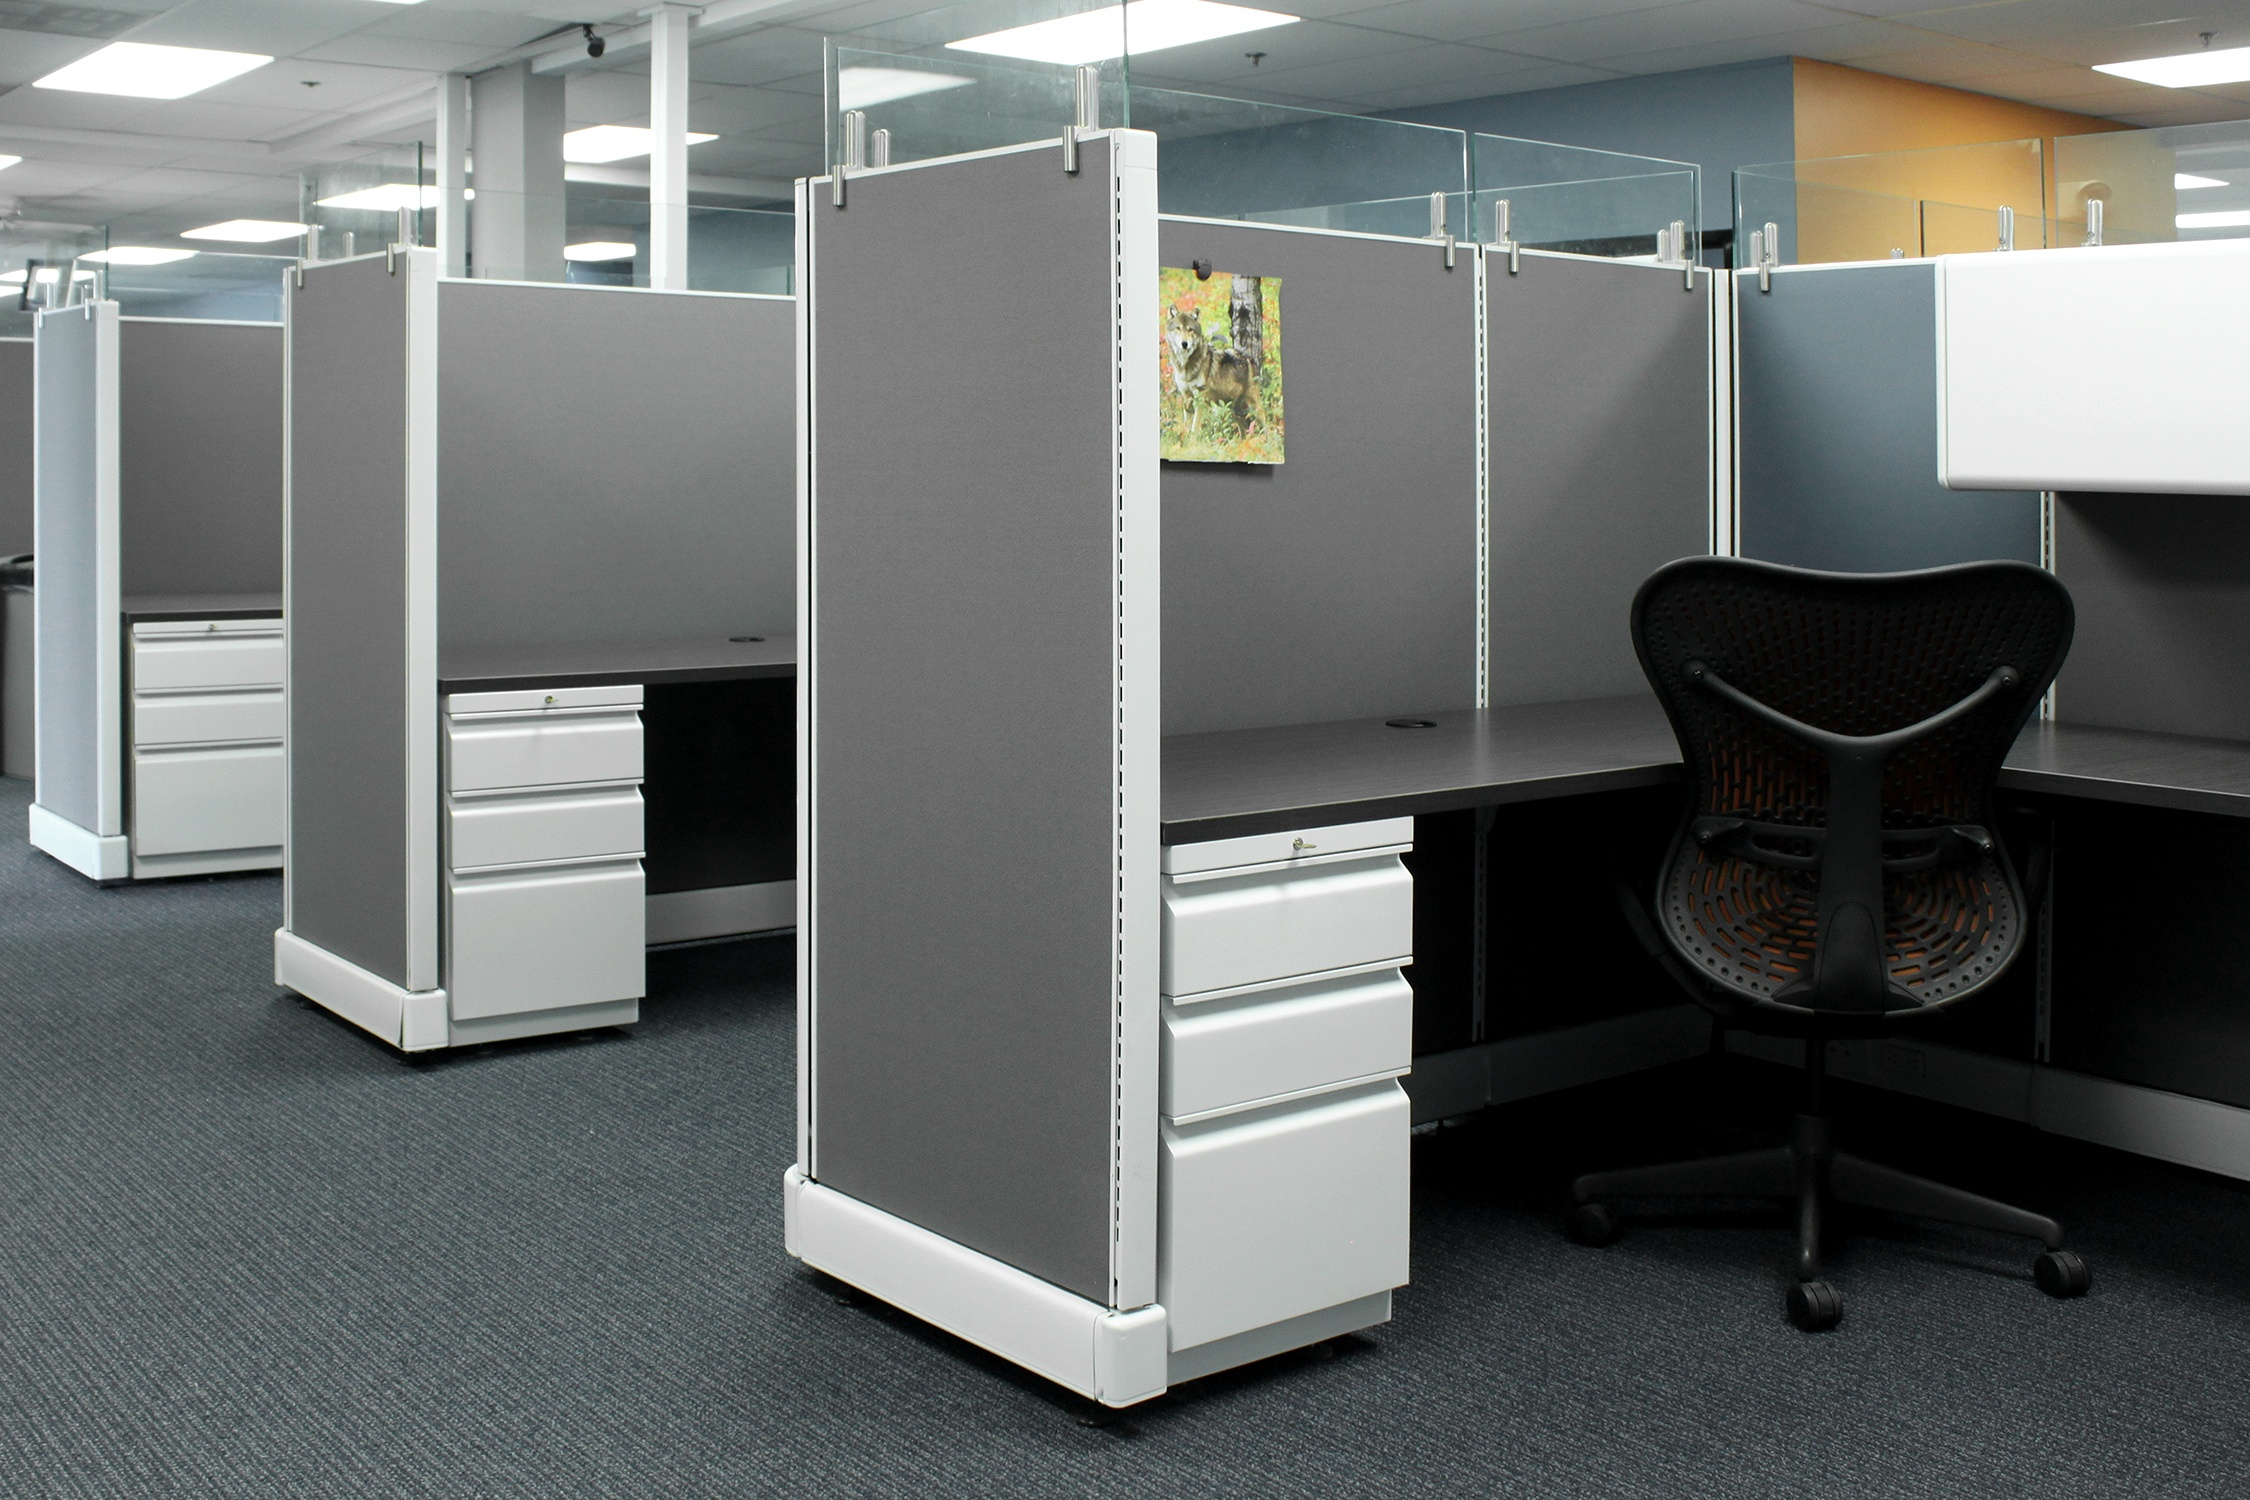 New workstations bring new life to this office.